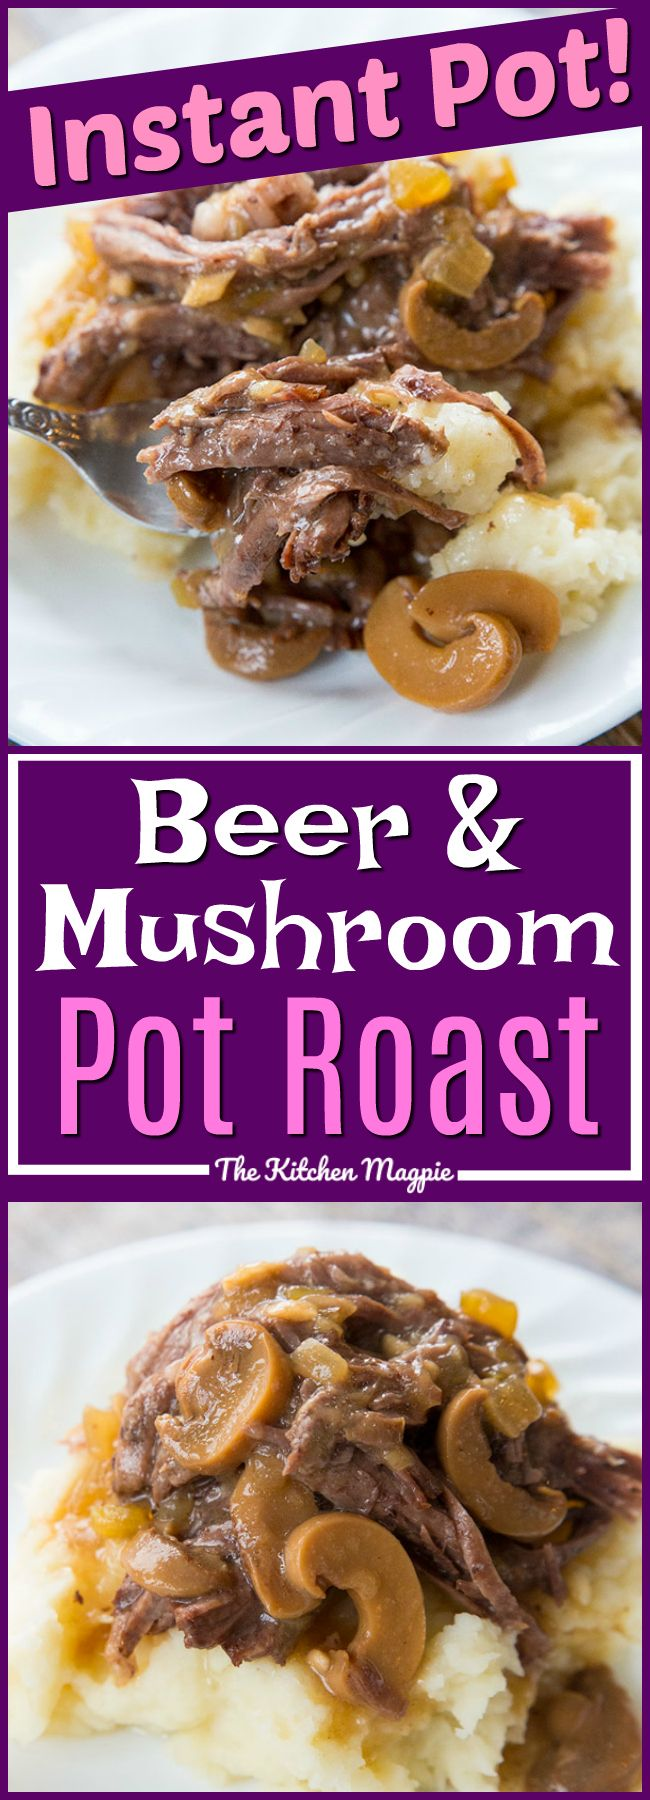 Beer & Mushroom Instant Pot Pot Roast! This delicious pot roast is made in your Instant Pot in only 2 hours and you have fall apart, tender roast beef! Recipe from @kitchenmagpie